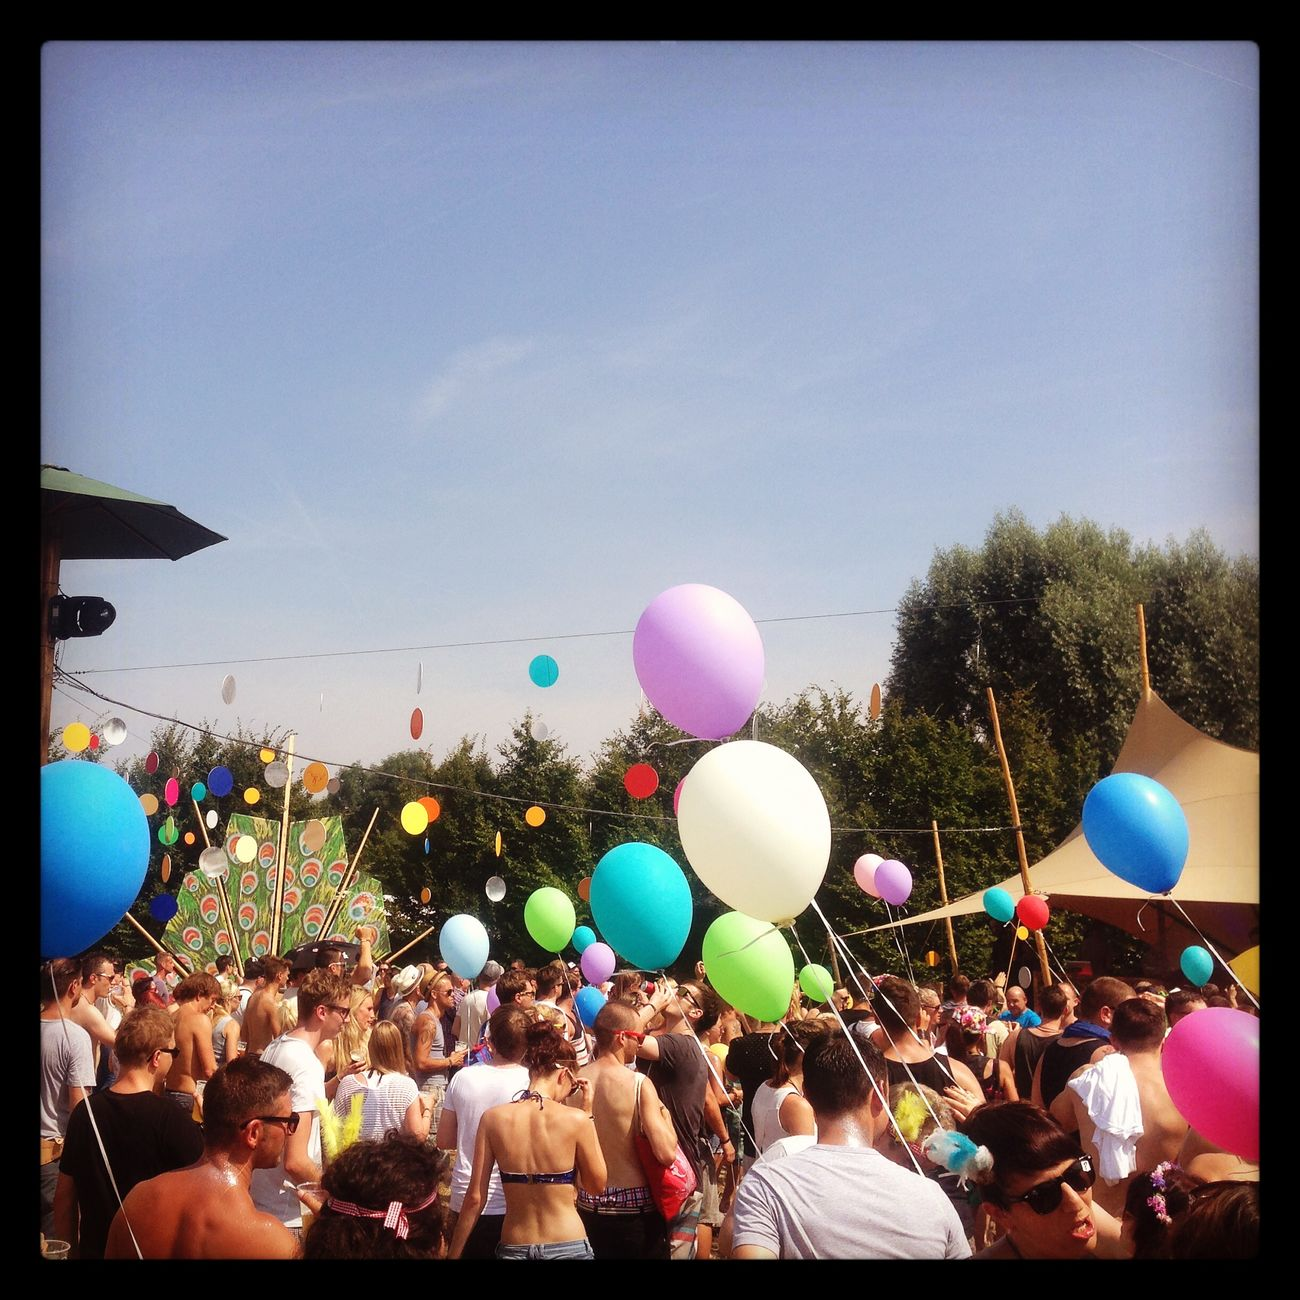 TH!NK? OpenAir Think Festival Festival Ballons Open Air